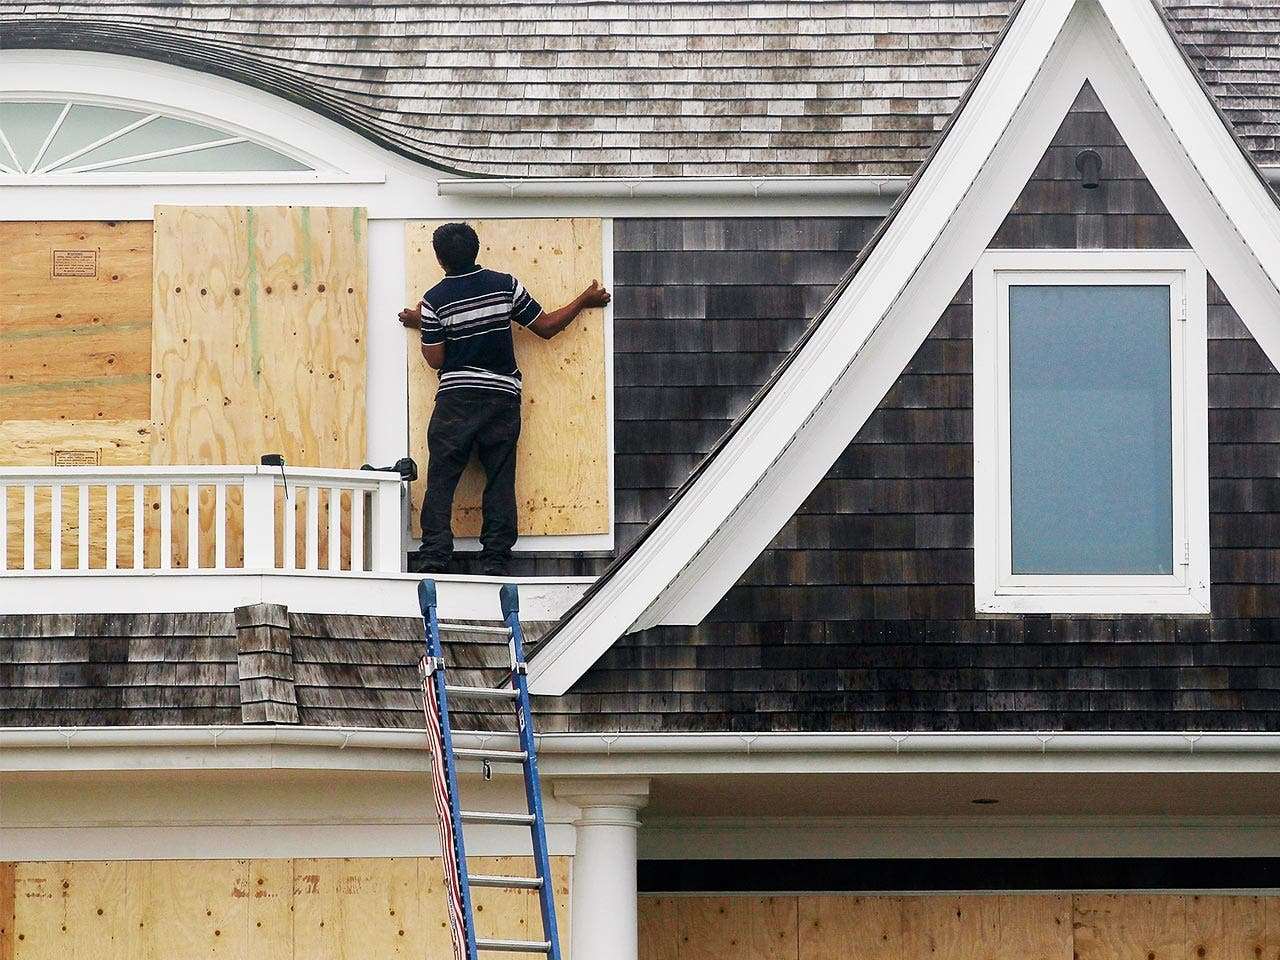 Man installing plywood over windows to avoid damage